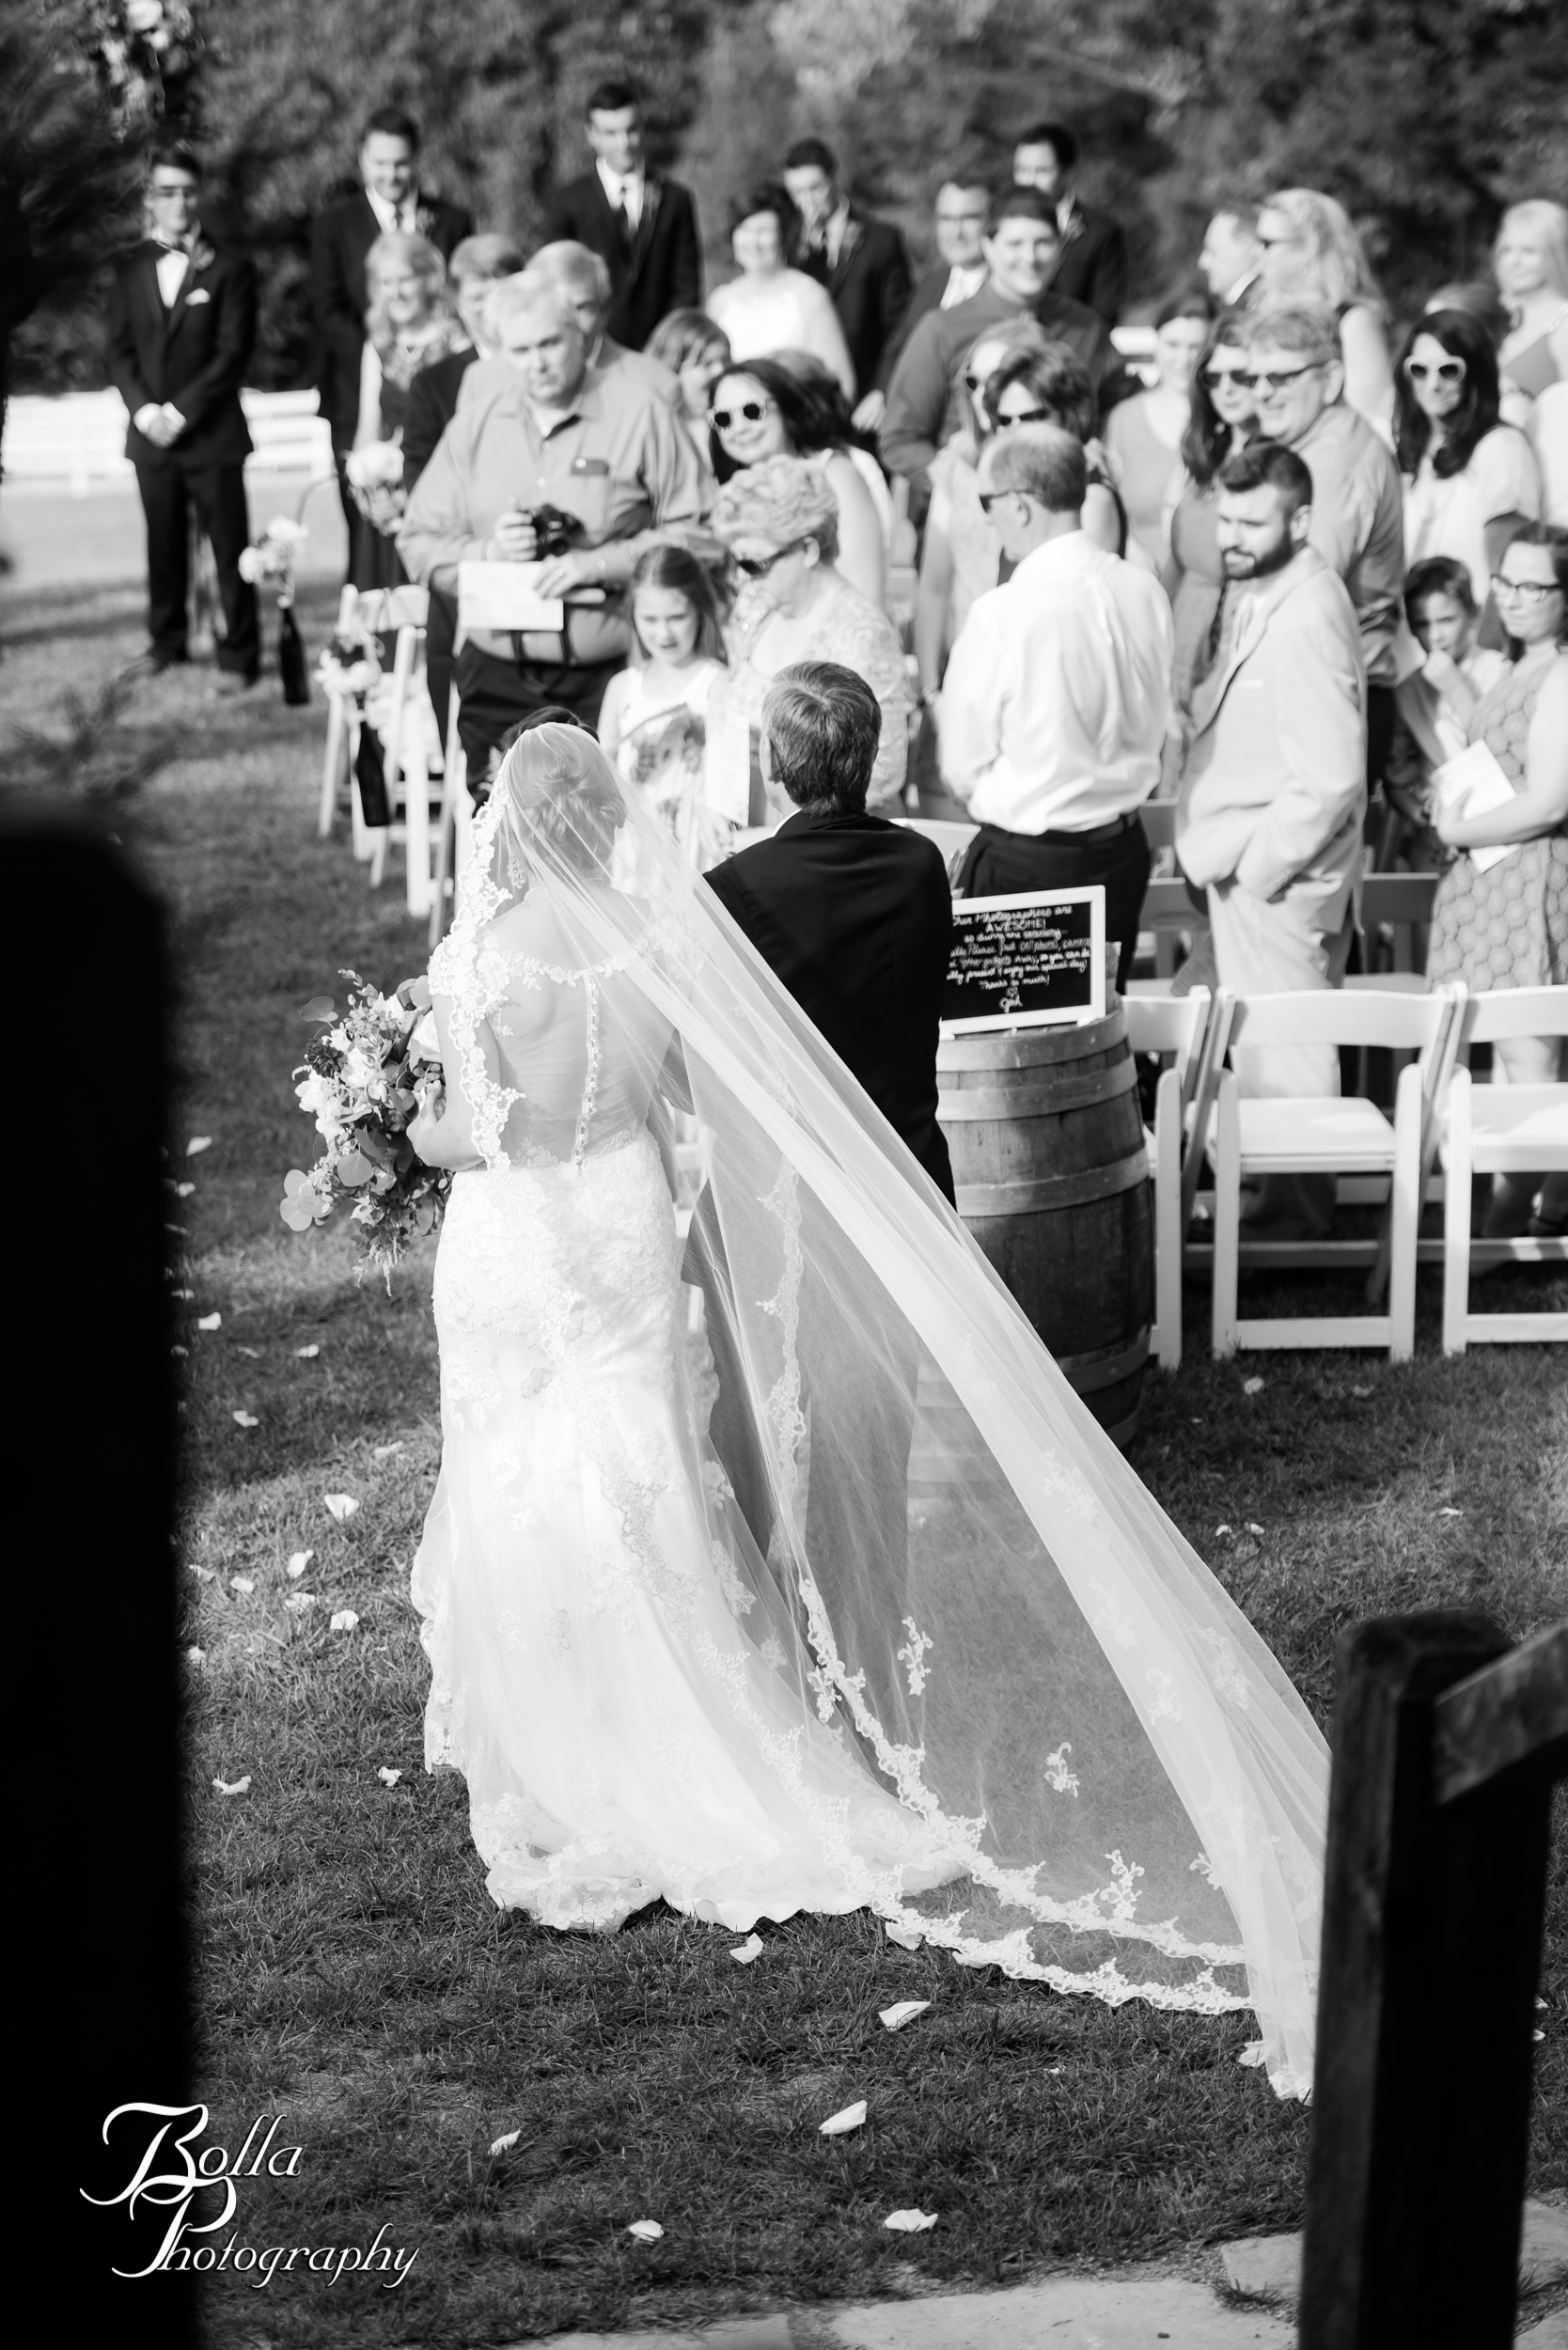 Bolla_photography_edwardsville_wedding_photographer_st_louis_weddings_Chaumette_winery_Mikusch-0346.jpg